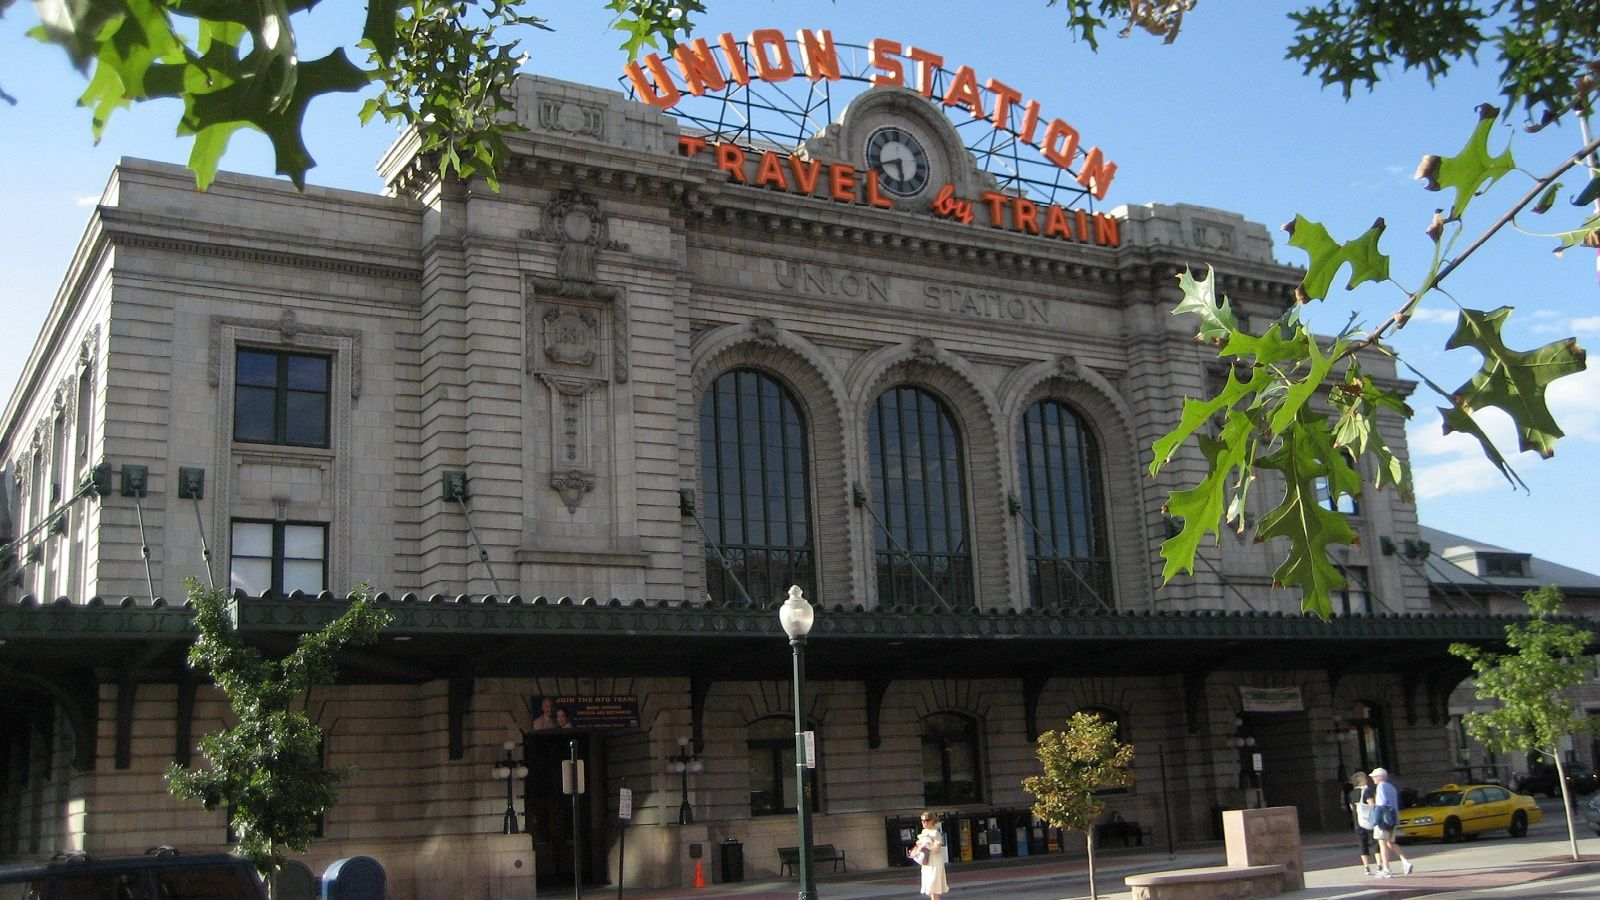 Things to Do in Denver - Union Station